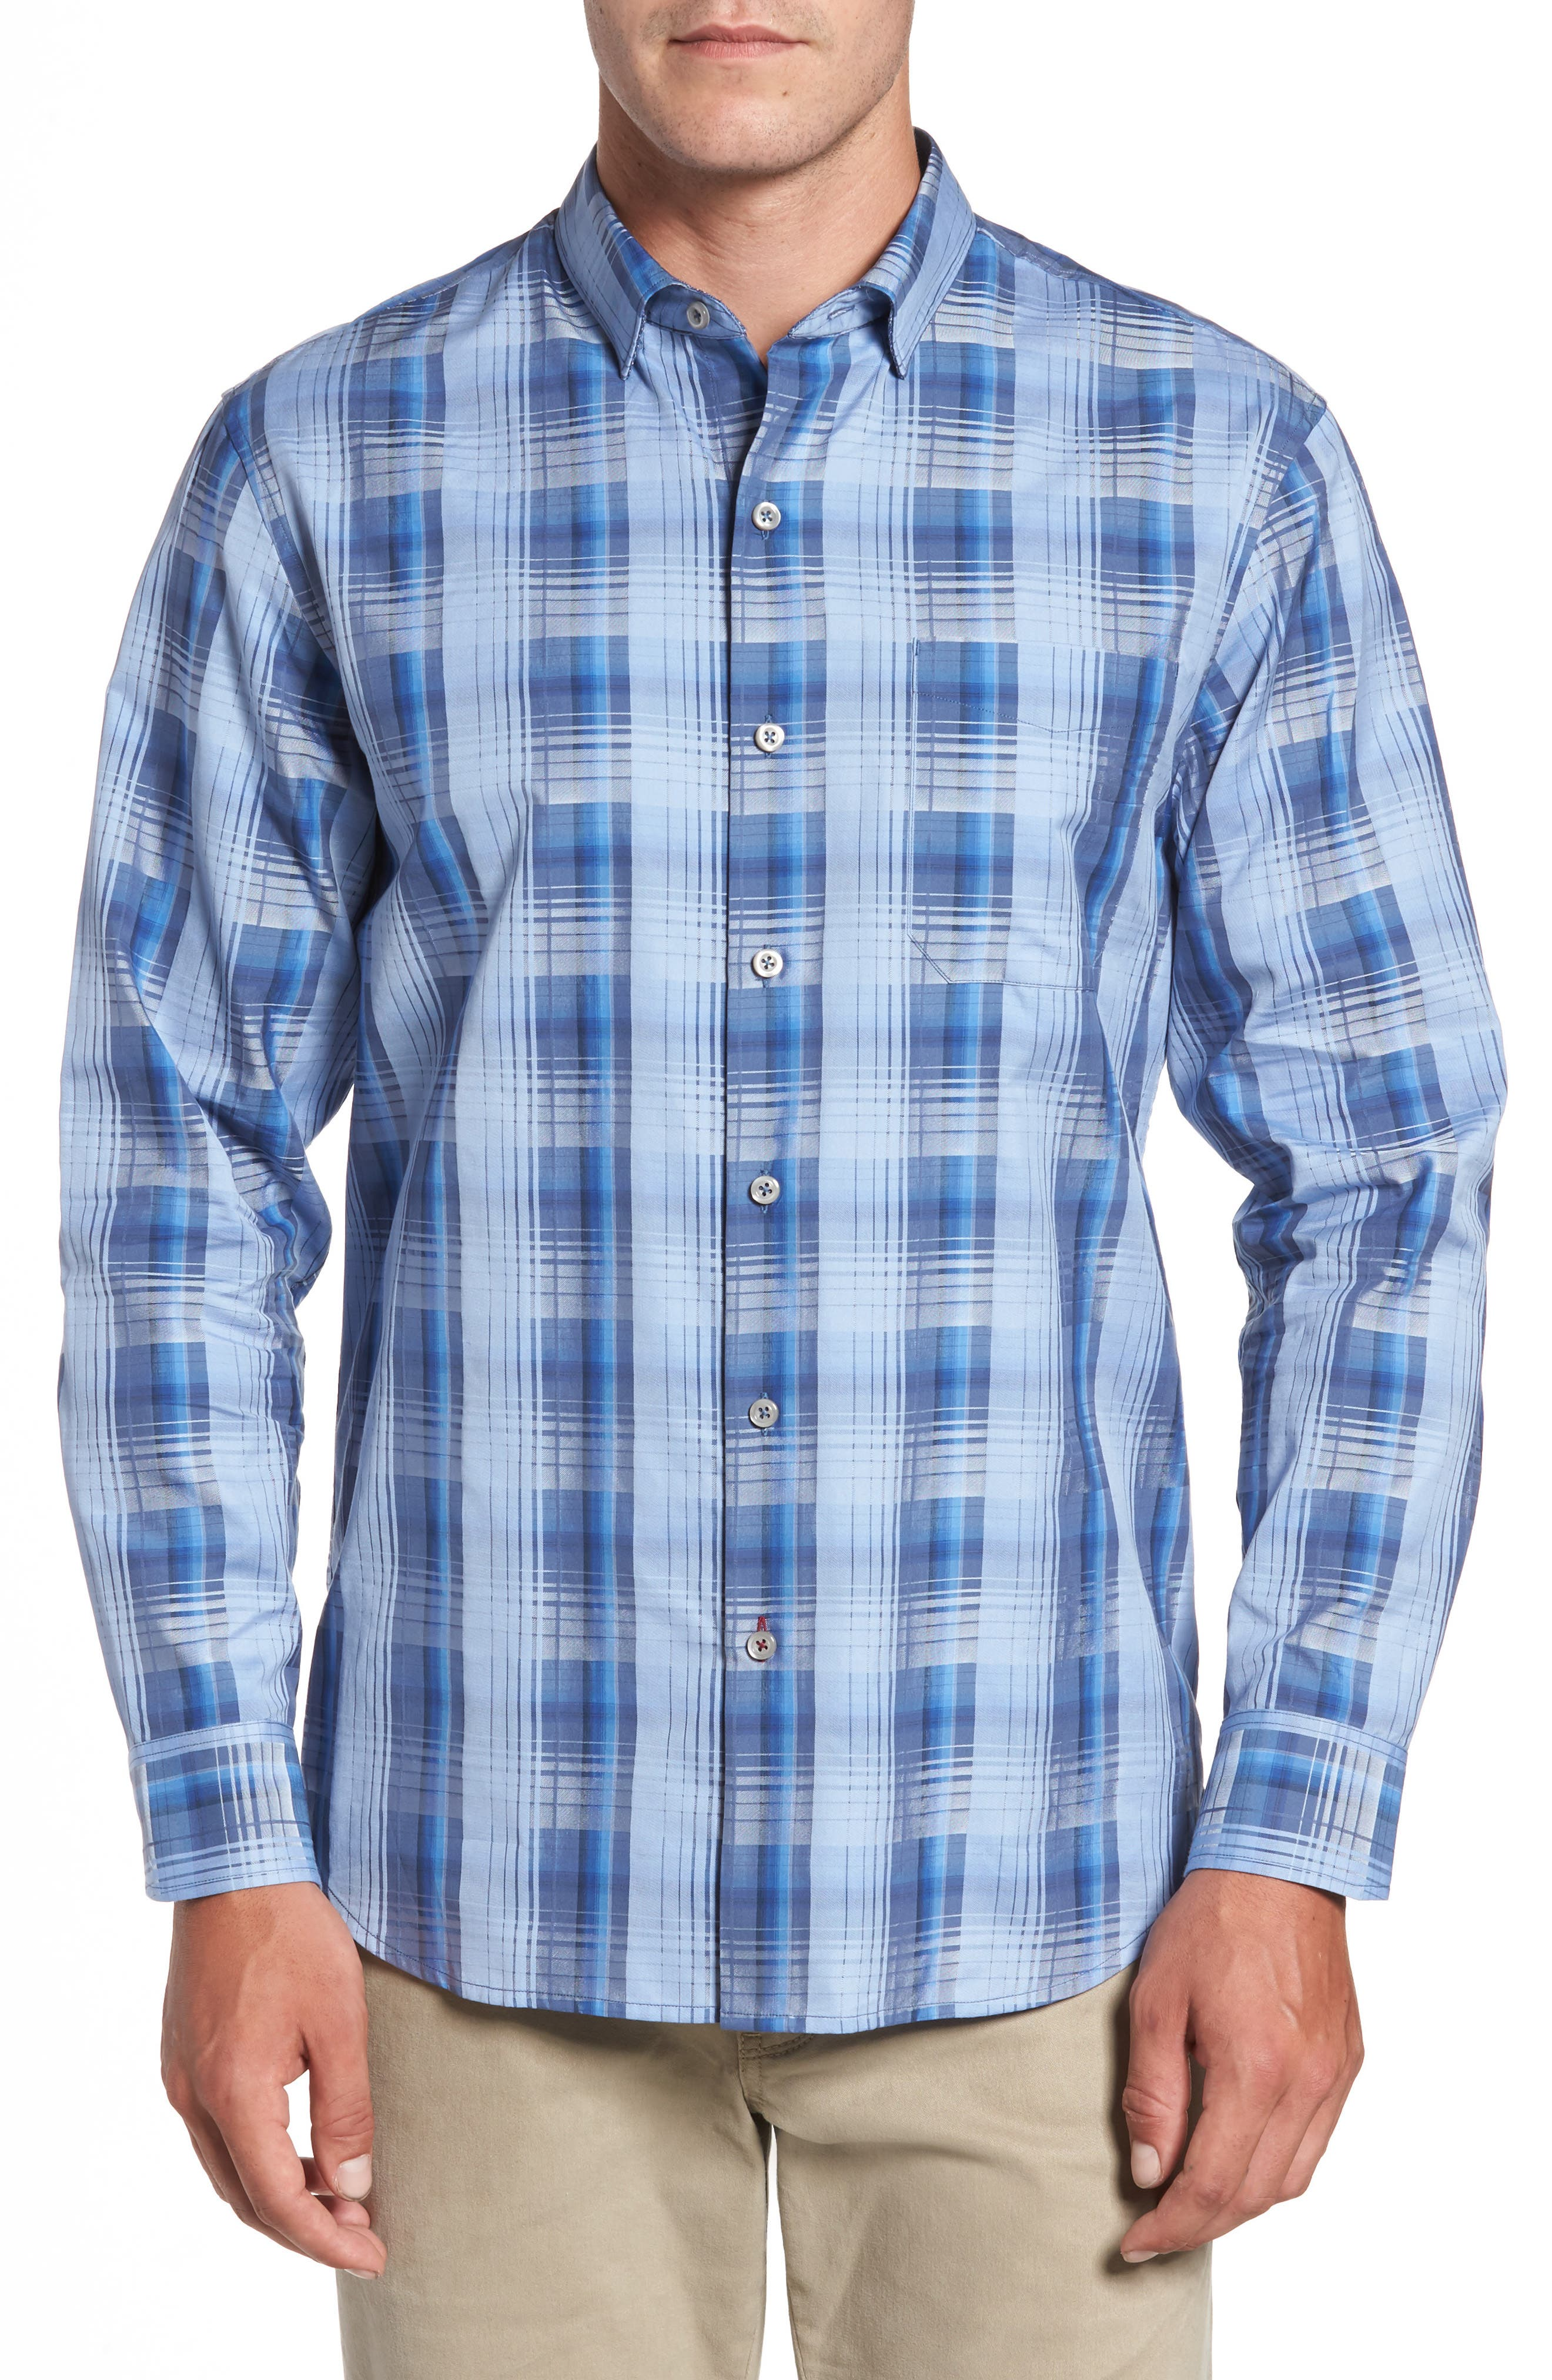 Alternate Image 1 Selected - Tommy Bahama Shadow Ridge Check Cotton & Silk Sport Shirt (Big & Tall)